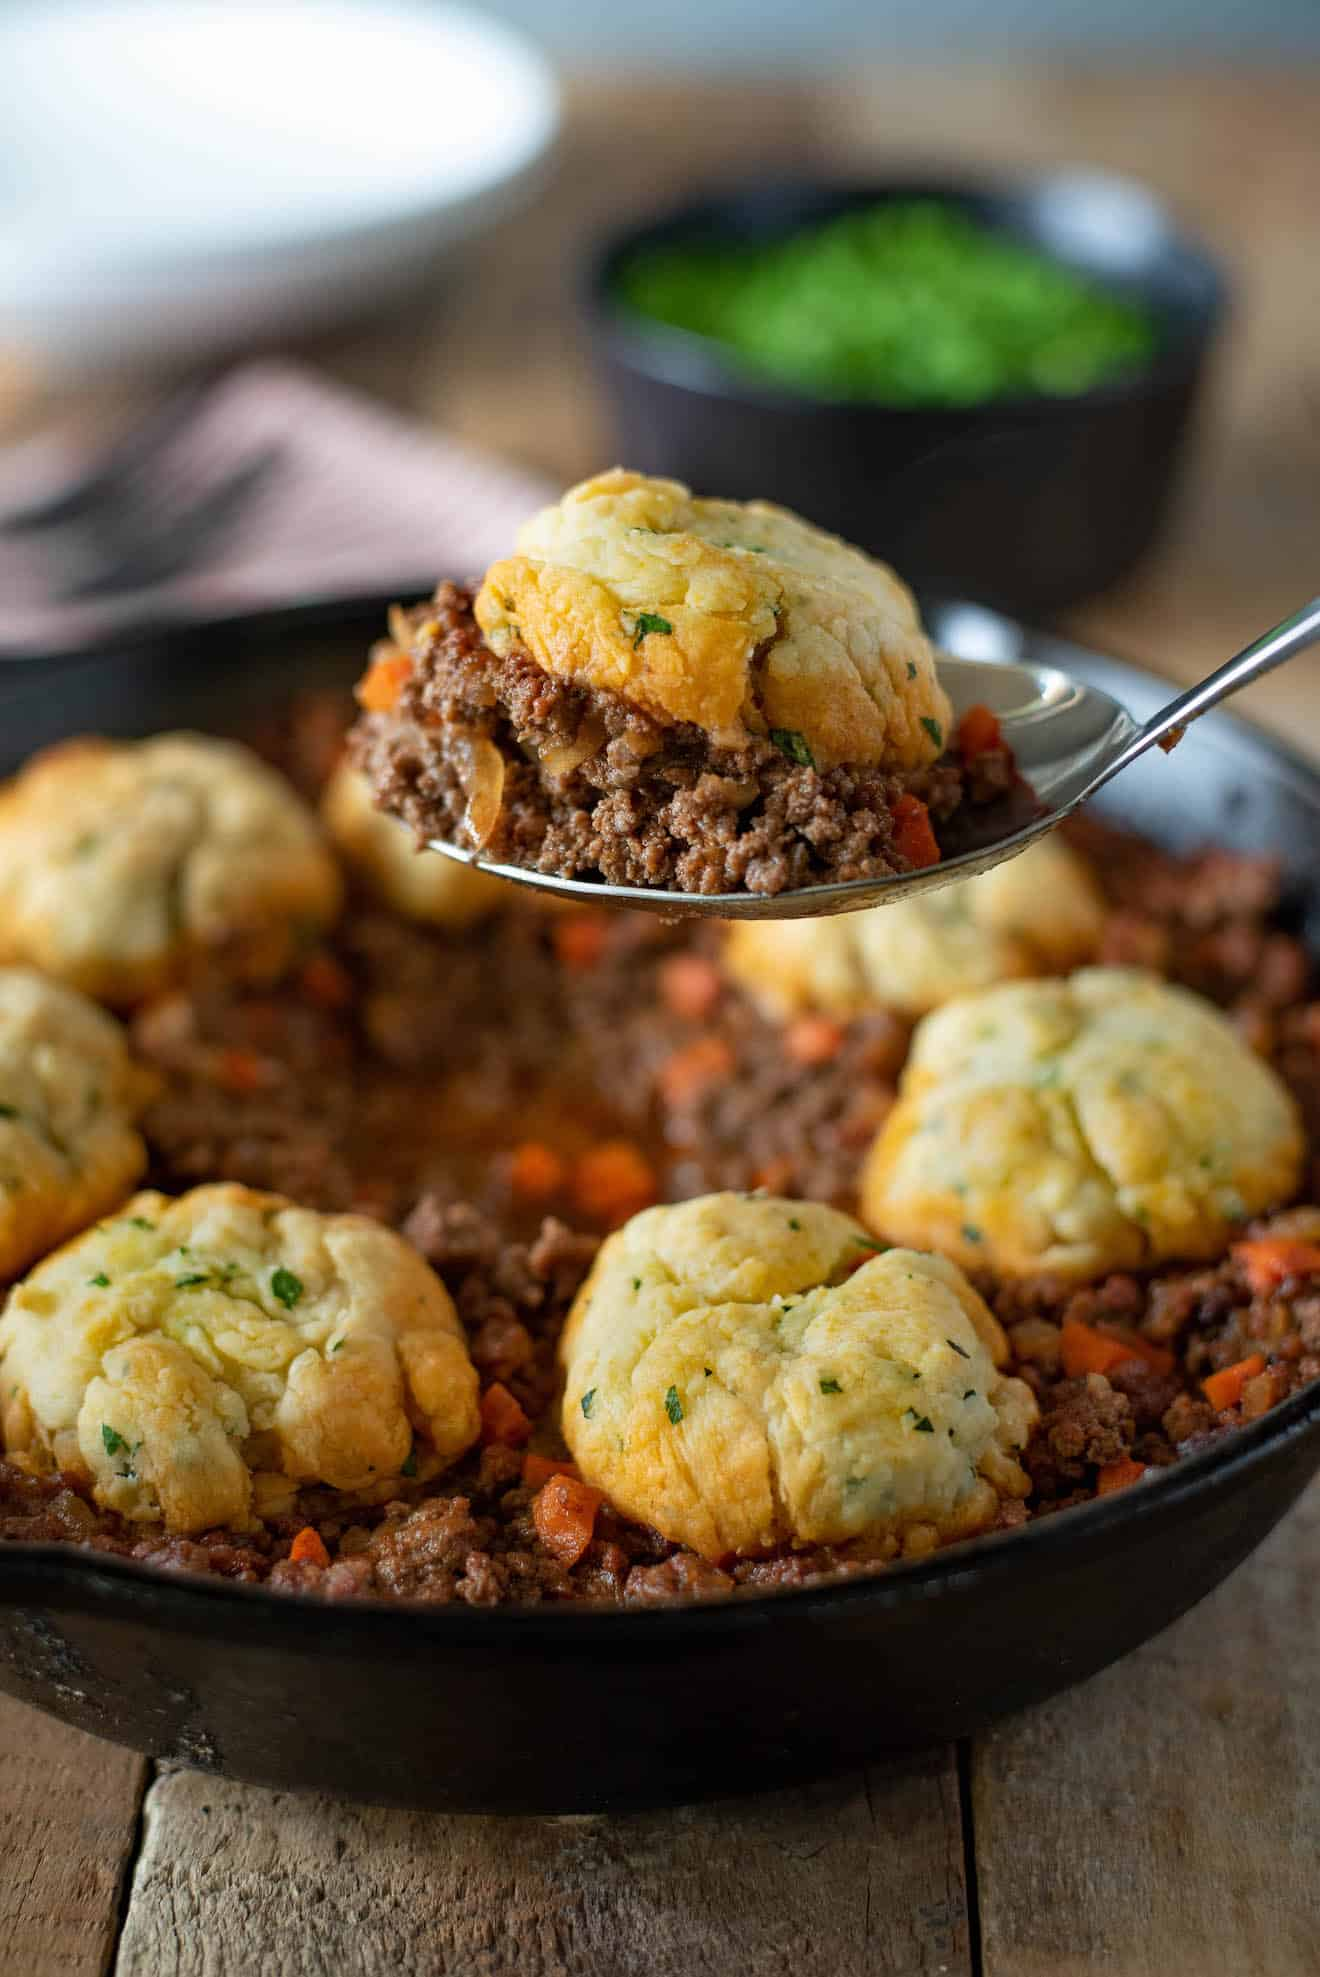 A spoon full of minced beef and dumplings